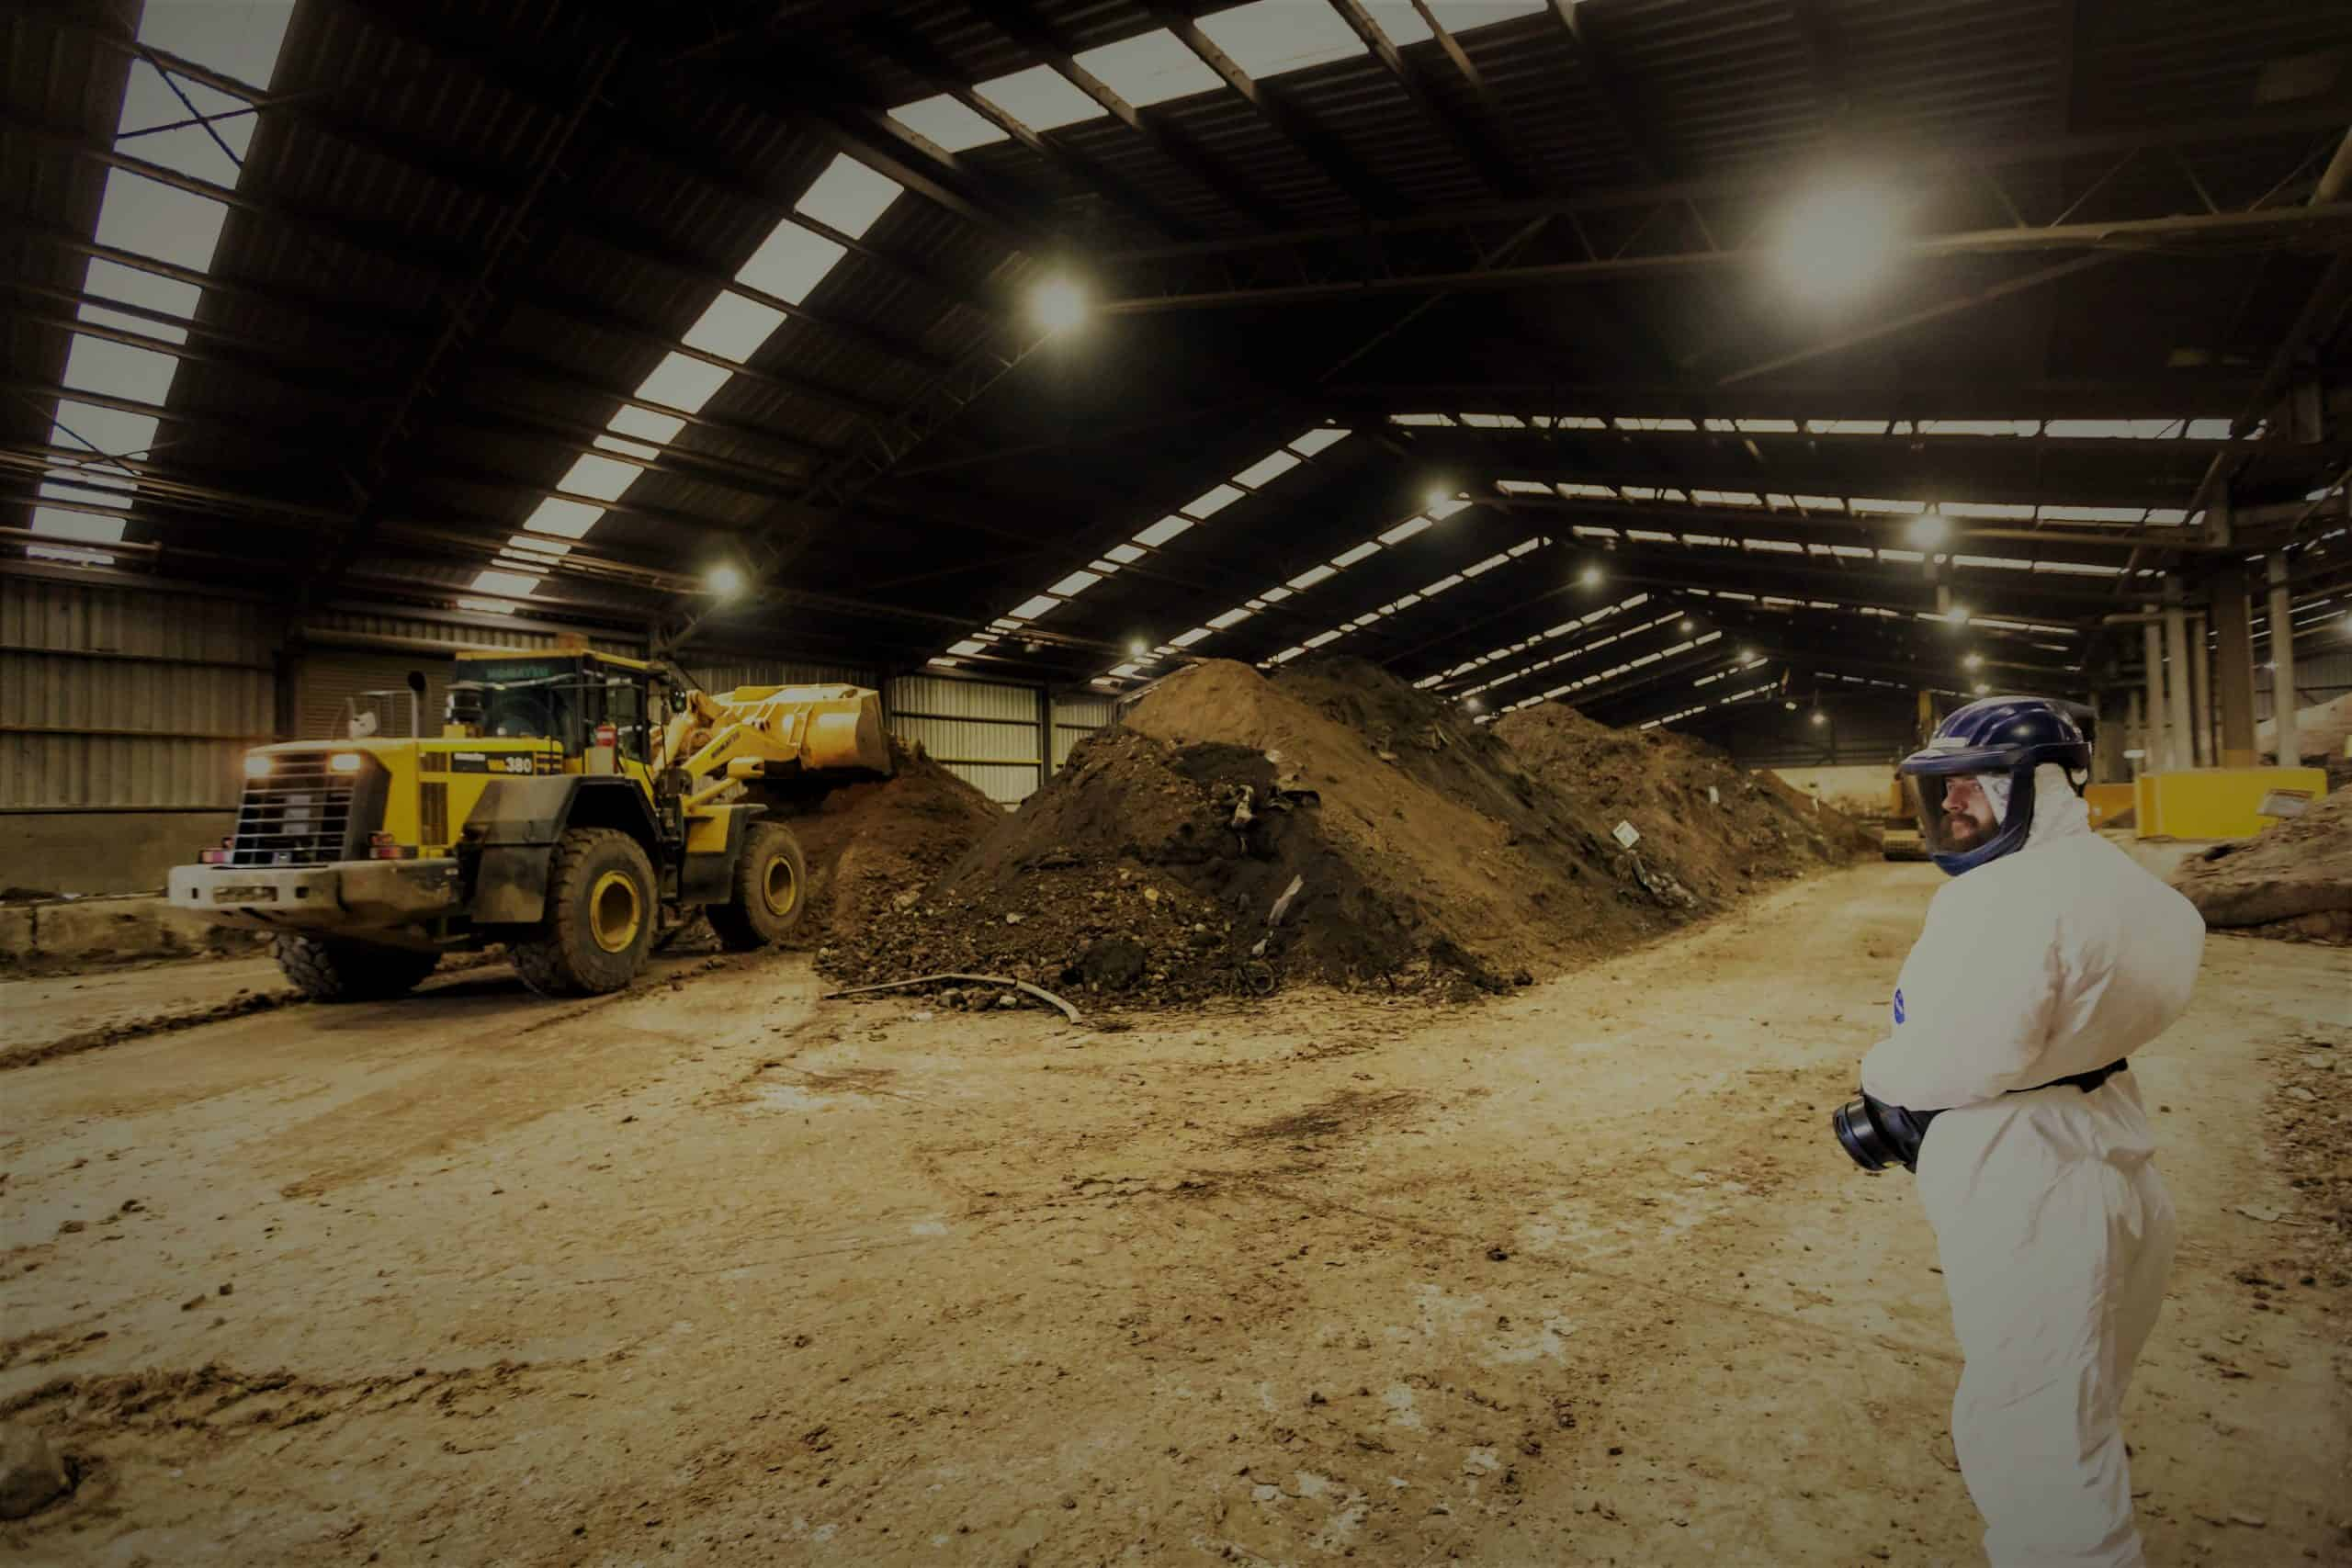 The growing need for hazardous waste treatment facilities